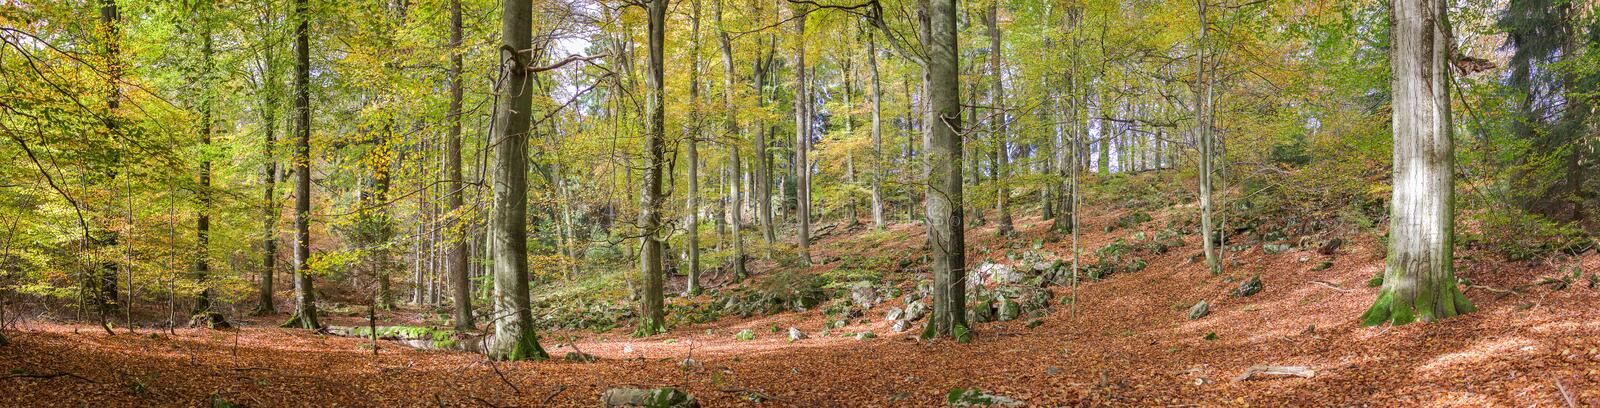 Panorama photo of the forest in autumn shades in the Eifel, Germany royalty free stock photography